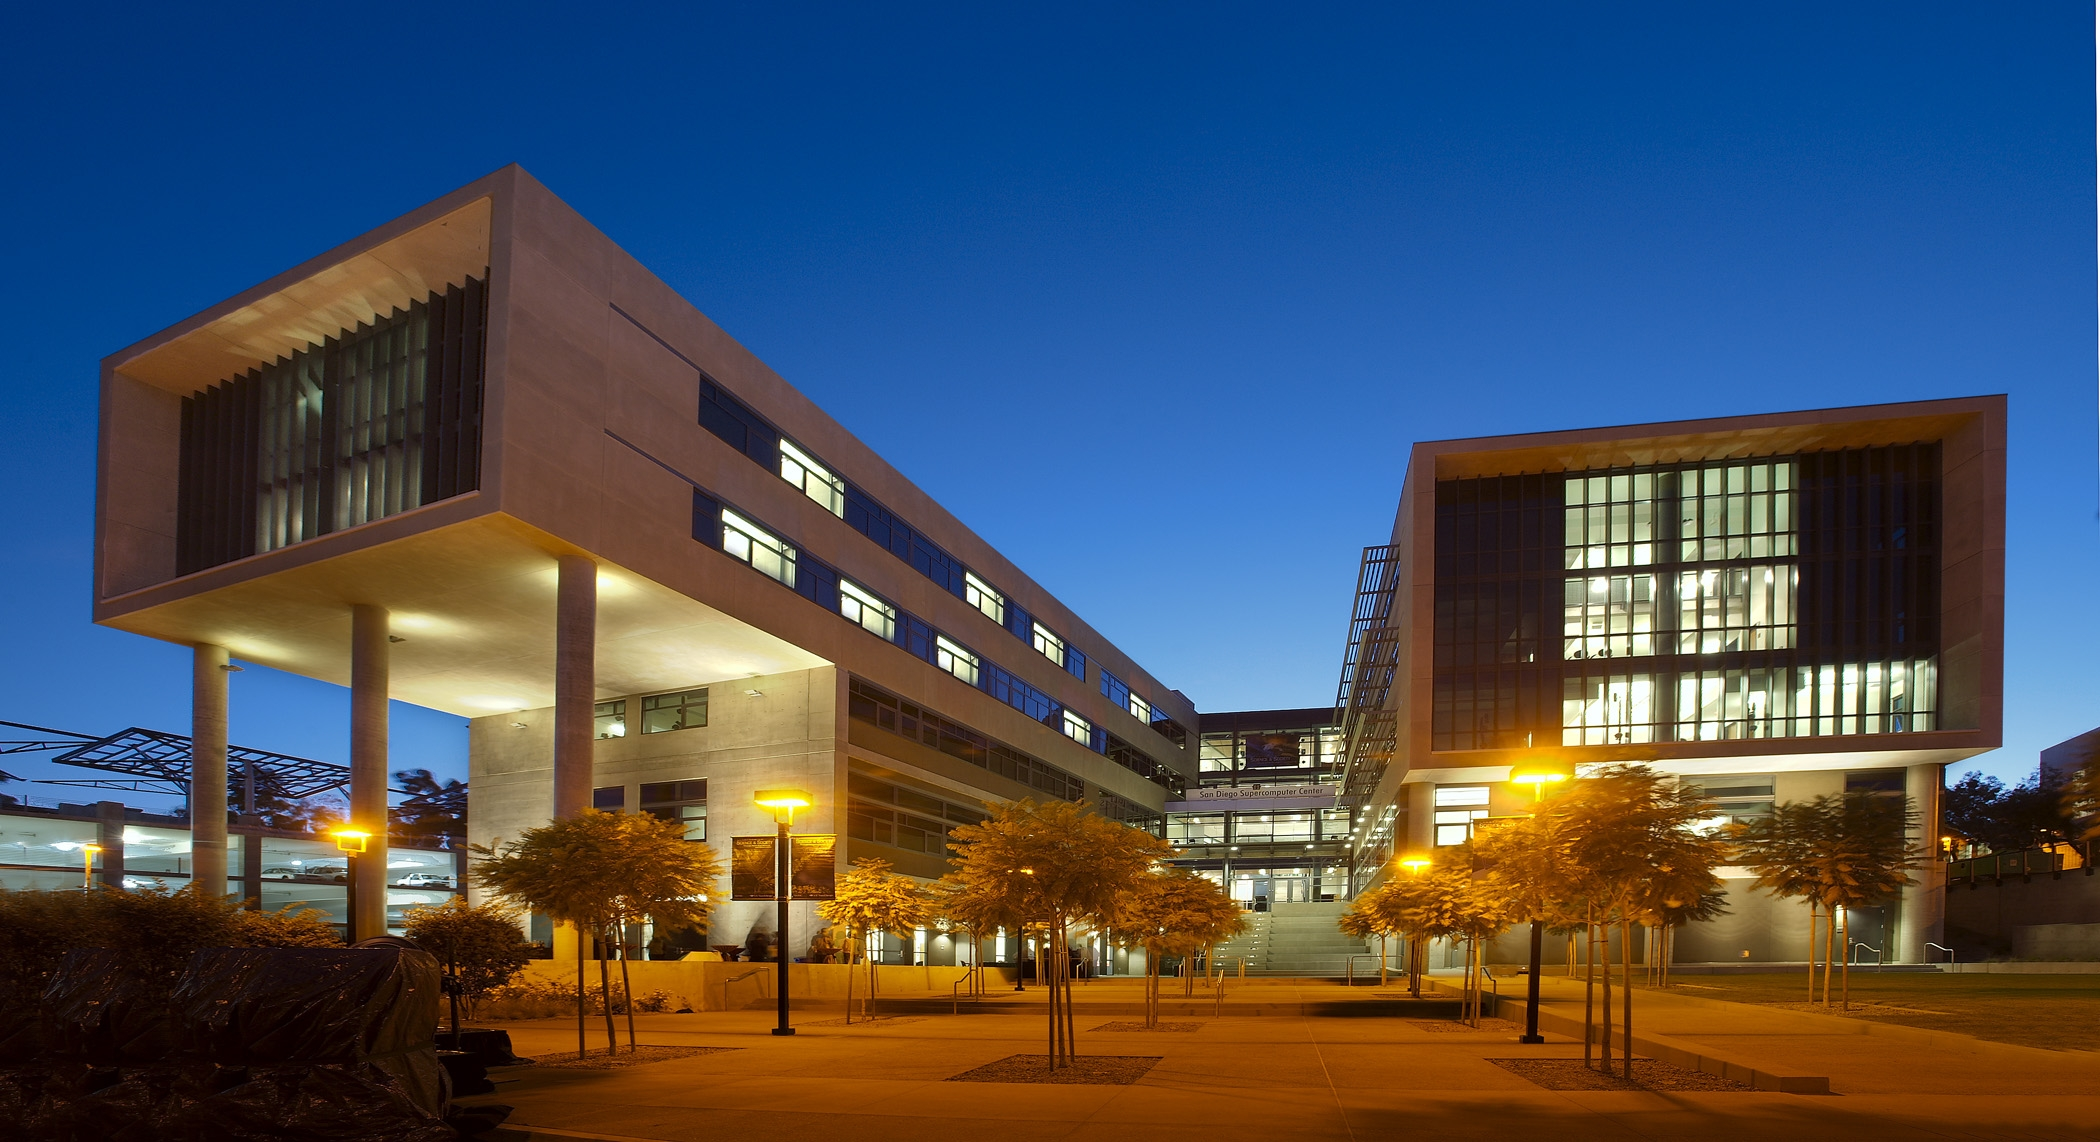 San Diego Supercomputer Center